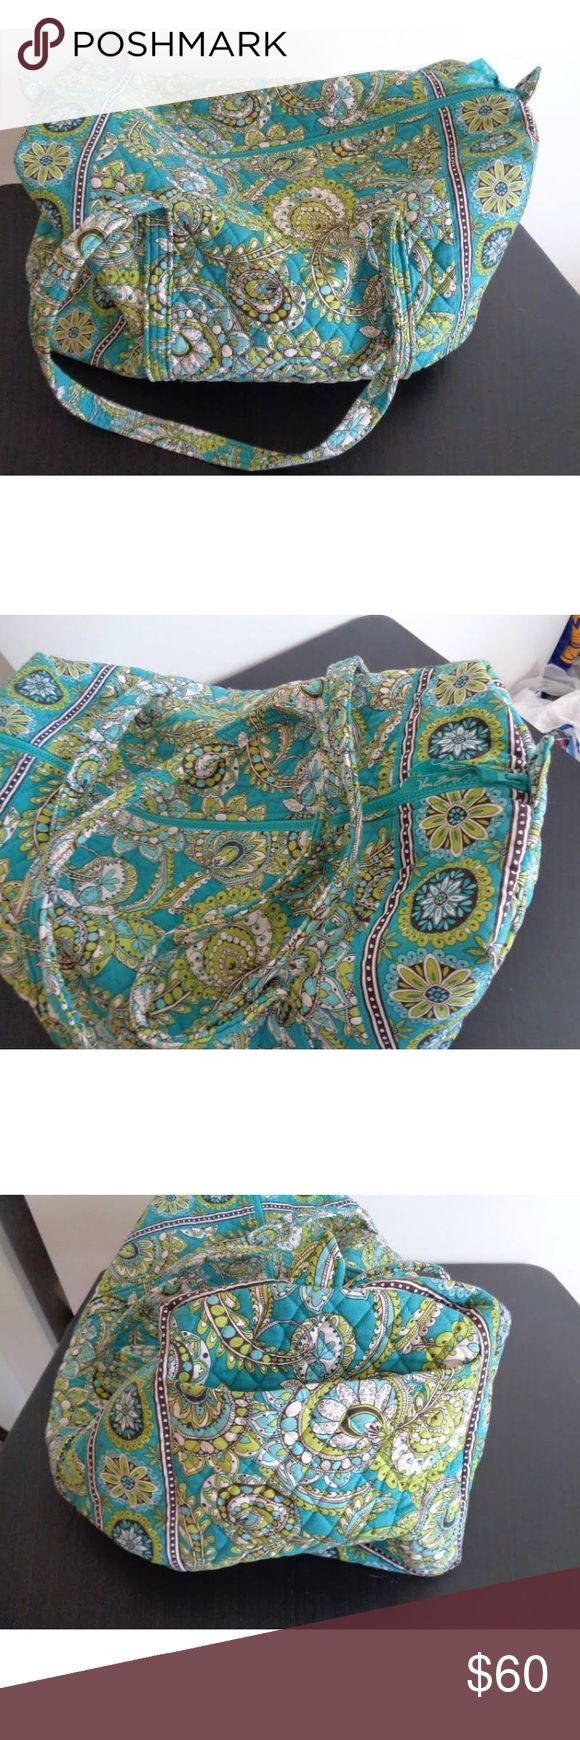 Vera Bradley Large Duffel Retired Peacock print, excellent condition. Very comfortable bag to carry. Vera Bradley Bags Travel Bags